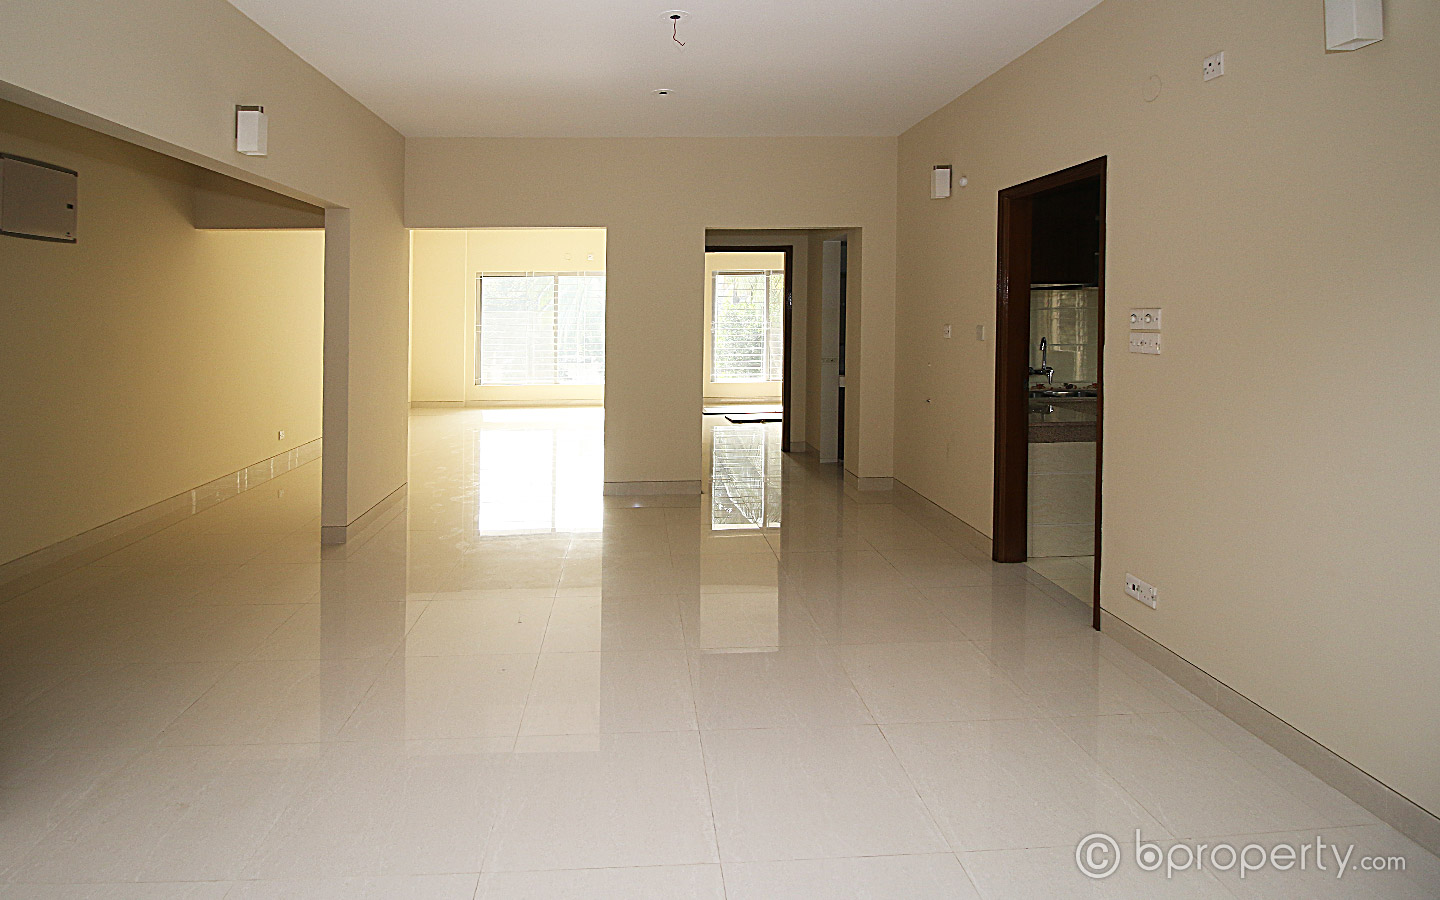 An exclusive apartment in Gulshan 1